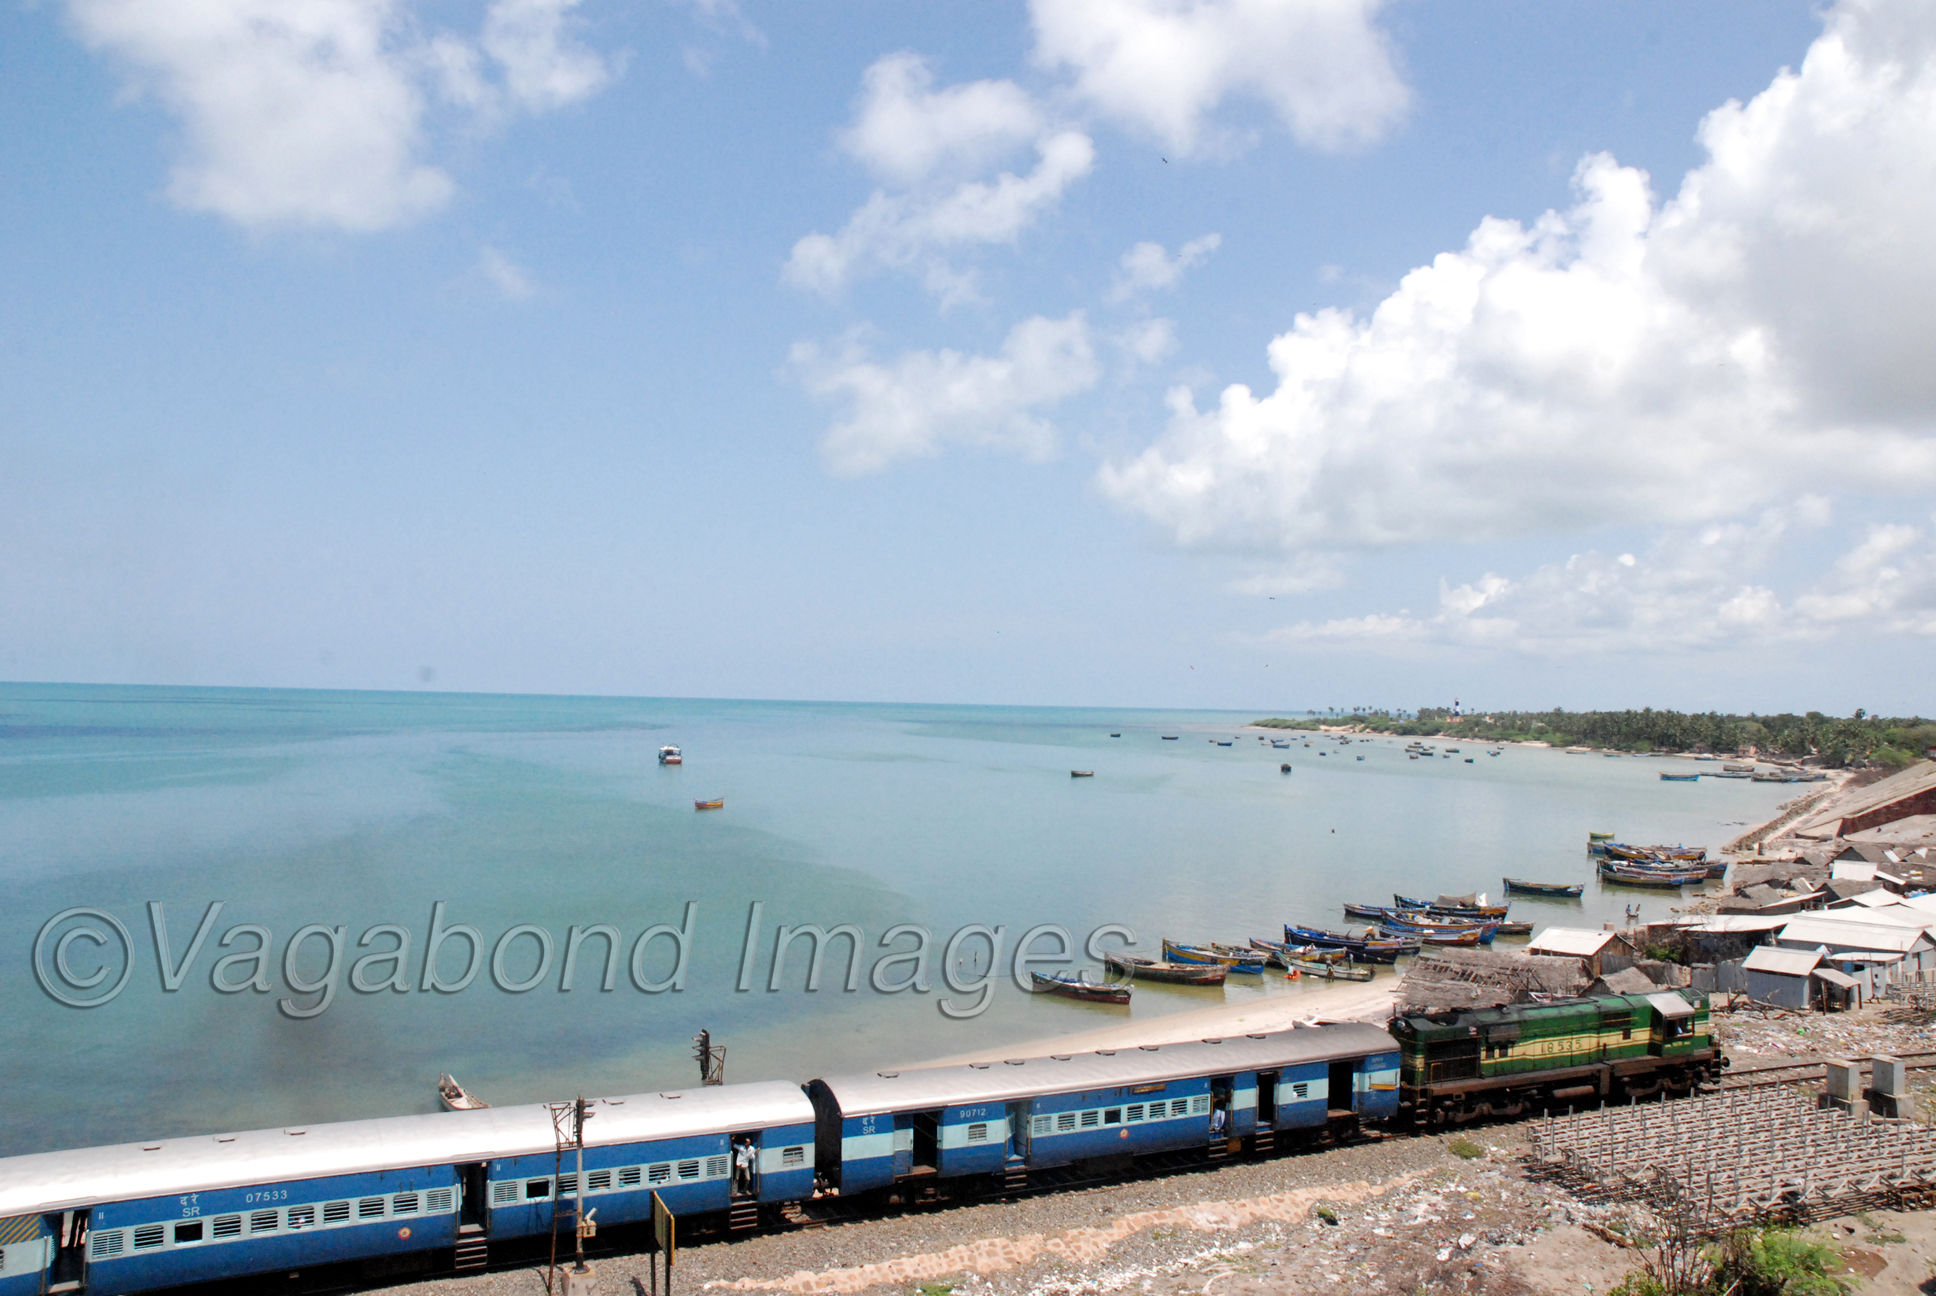 Train entering the Pamban island housing the famour pilgrimage site of Rameshwaram